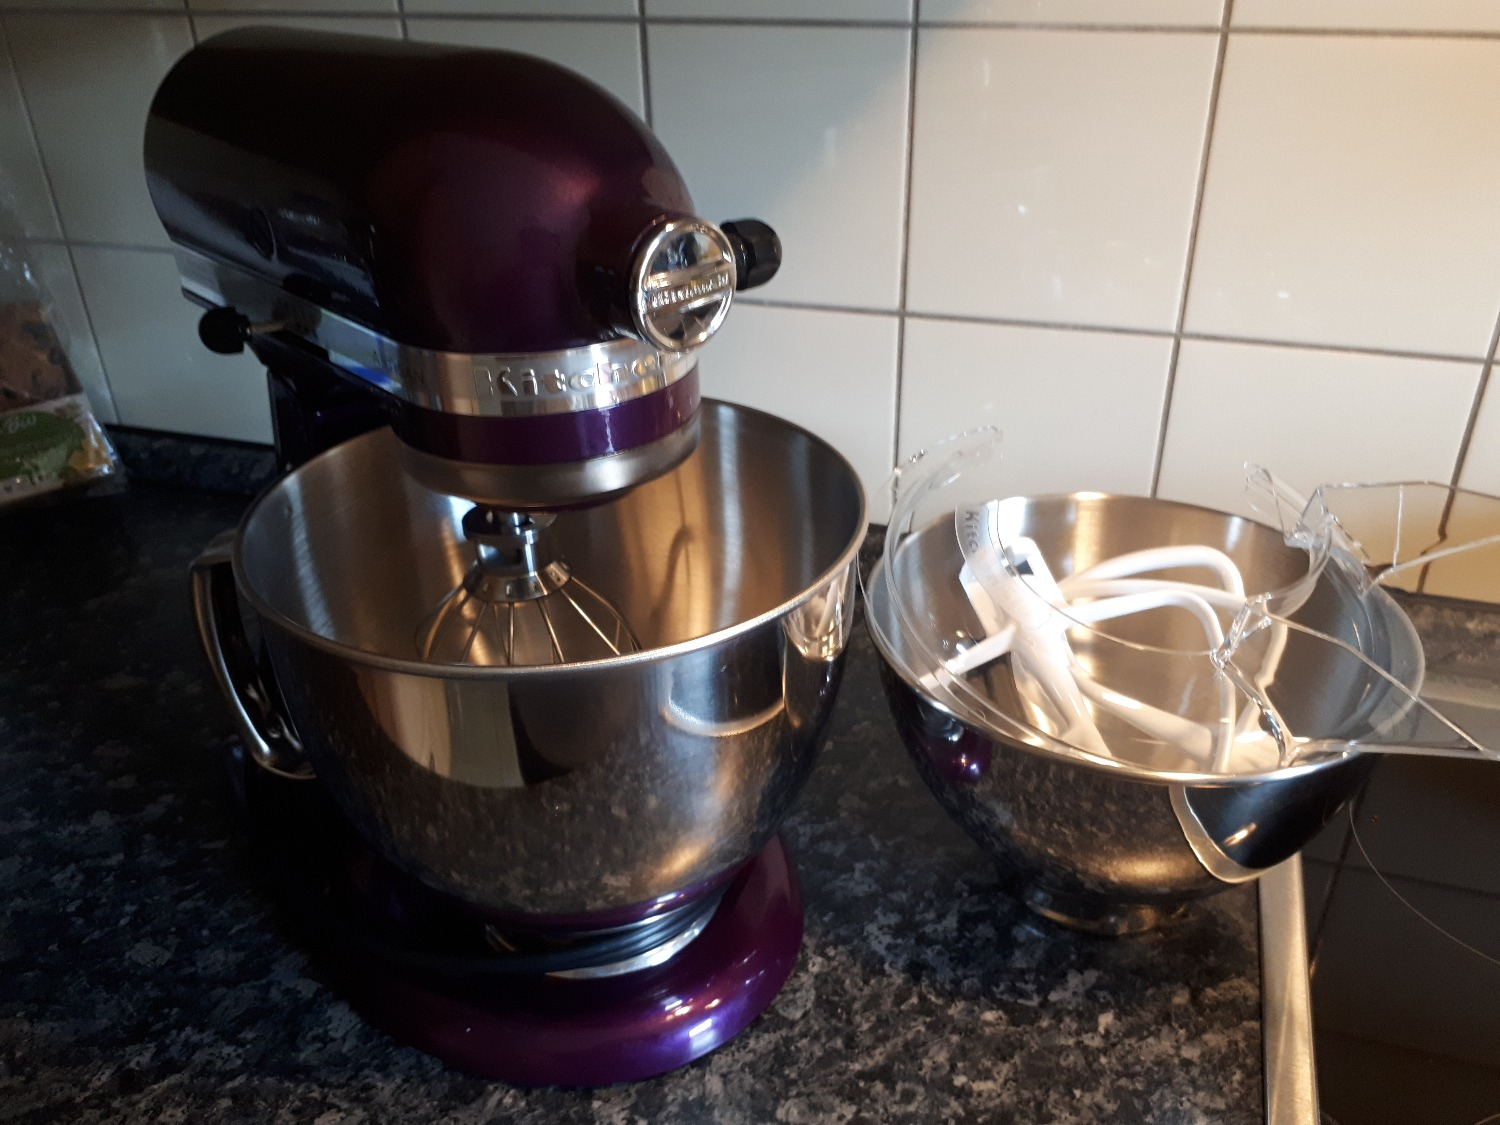 KitchenAid 5KSM175 4,8l Artisan Starterset - Generation YES